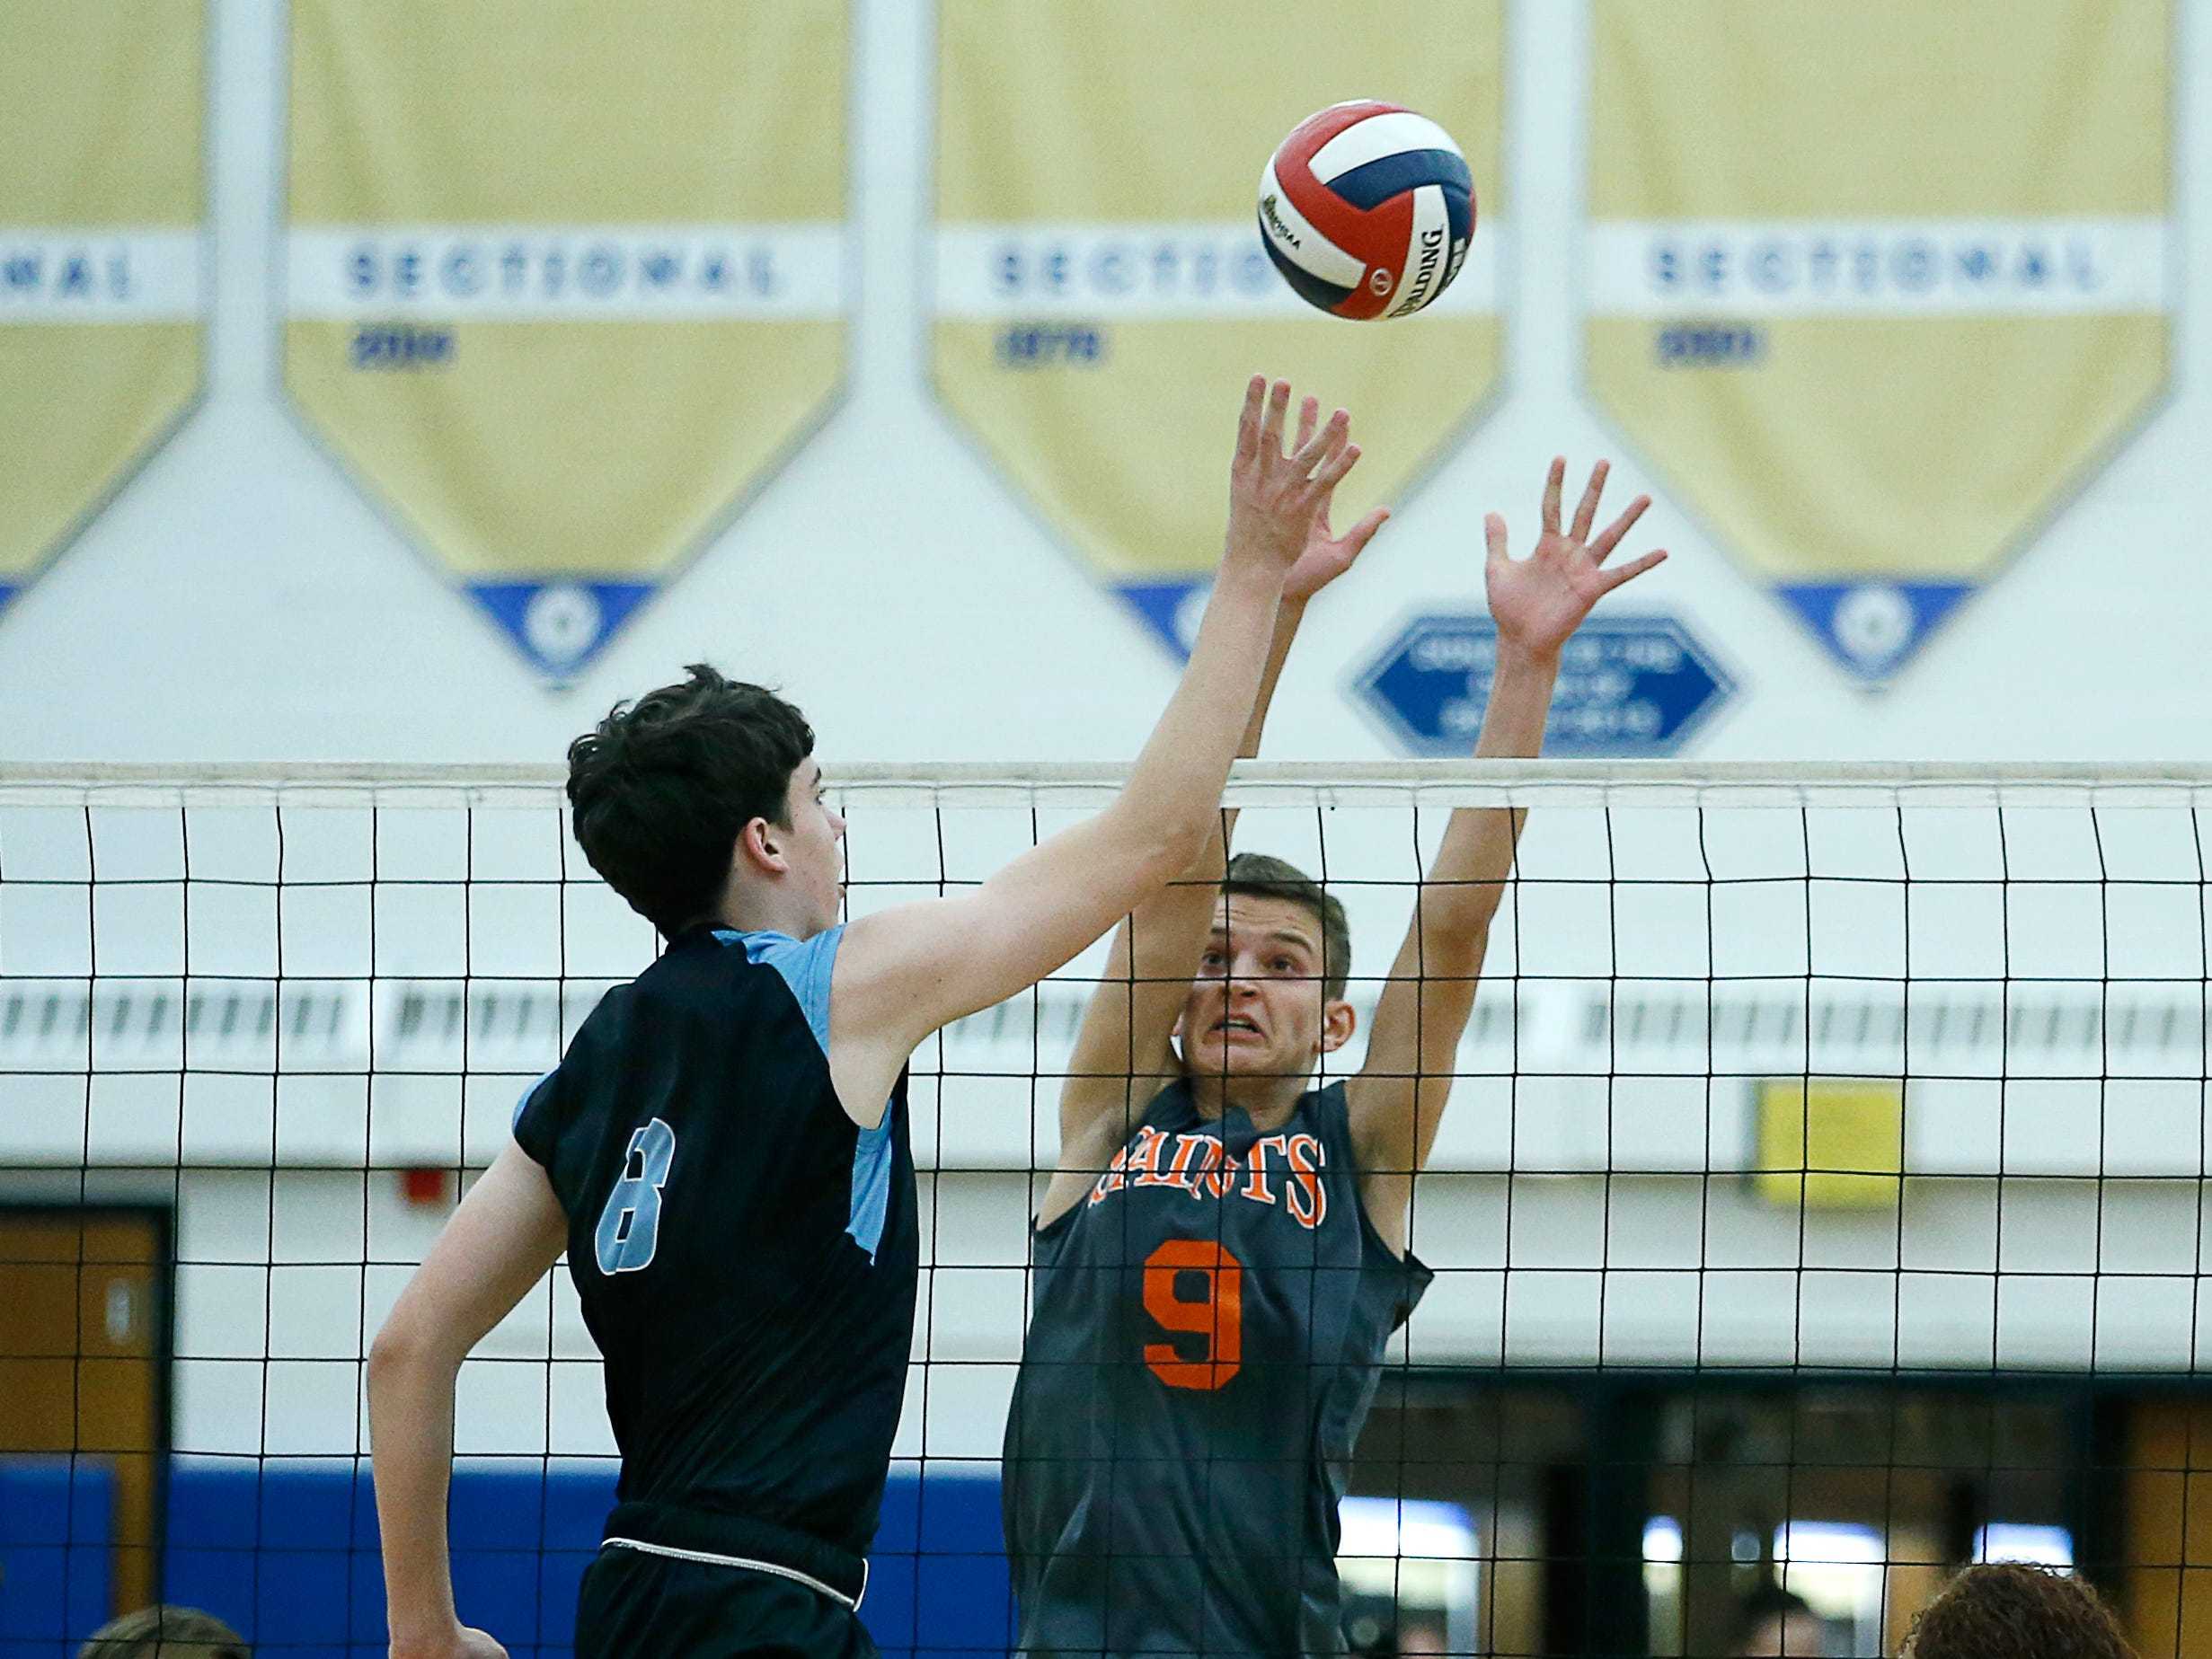 Class B volleyball final: Midlakes' Kyle McCann tips the ball over Churchville-Chili's Greg Czolgosz in the first set at Webster Schroeder High School.